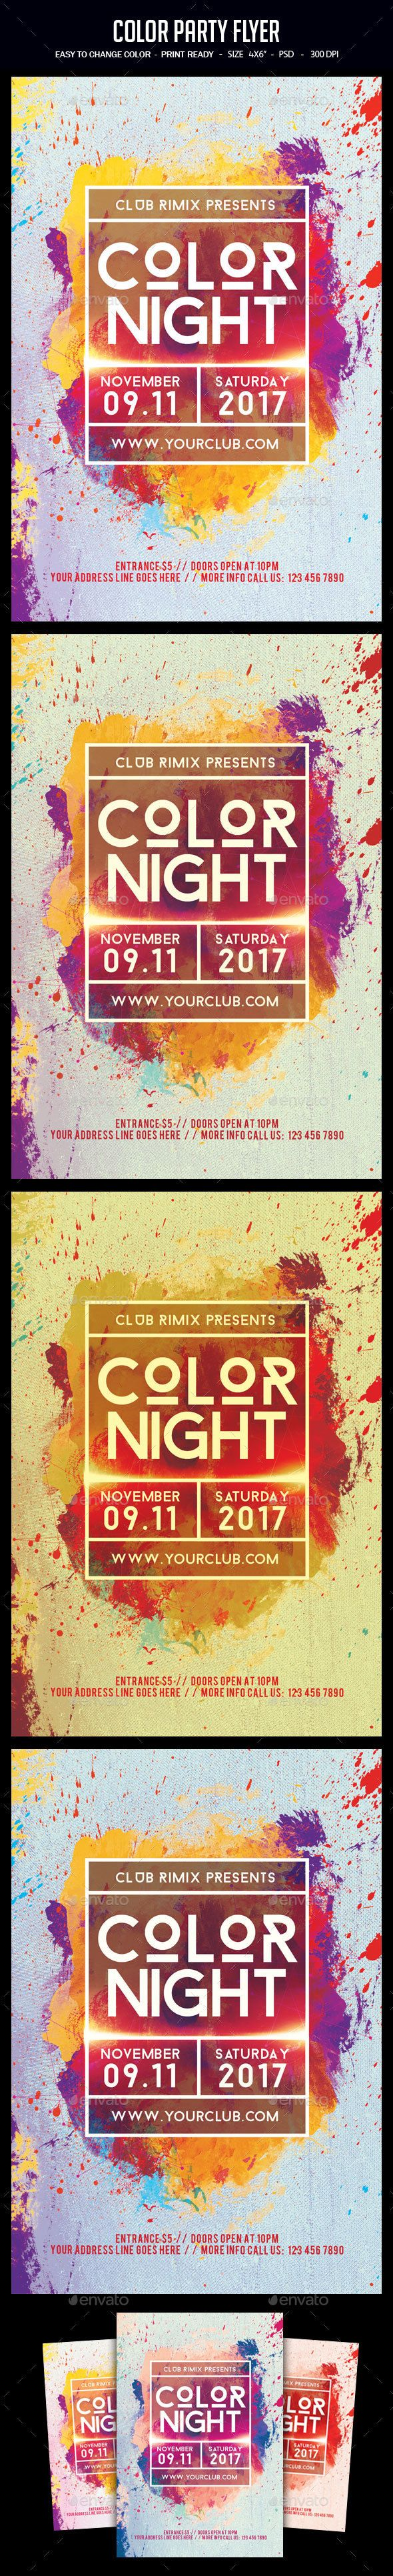 Color Party Flyer Template PSD